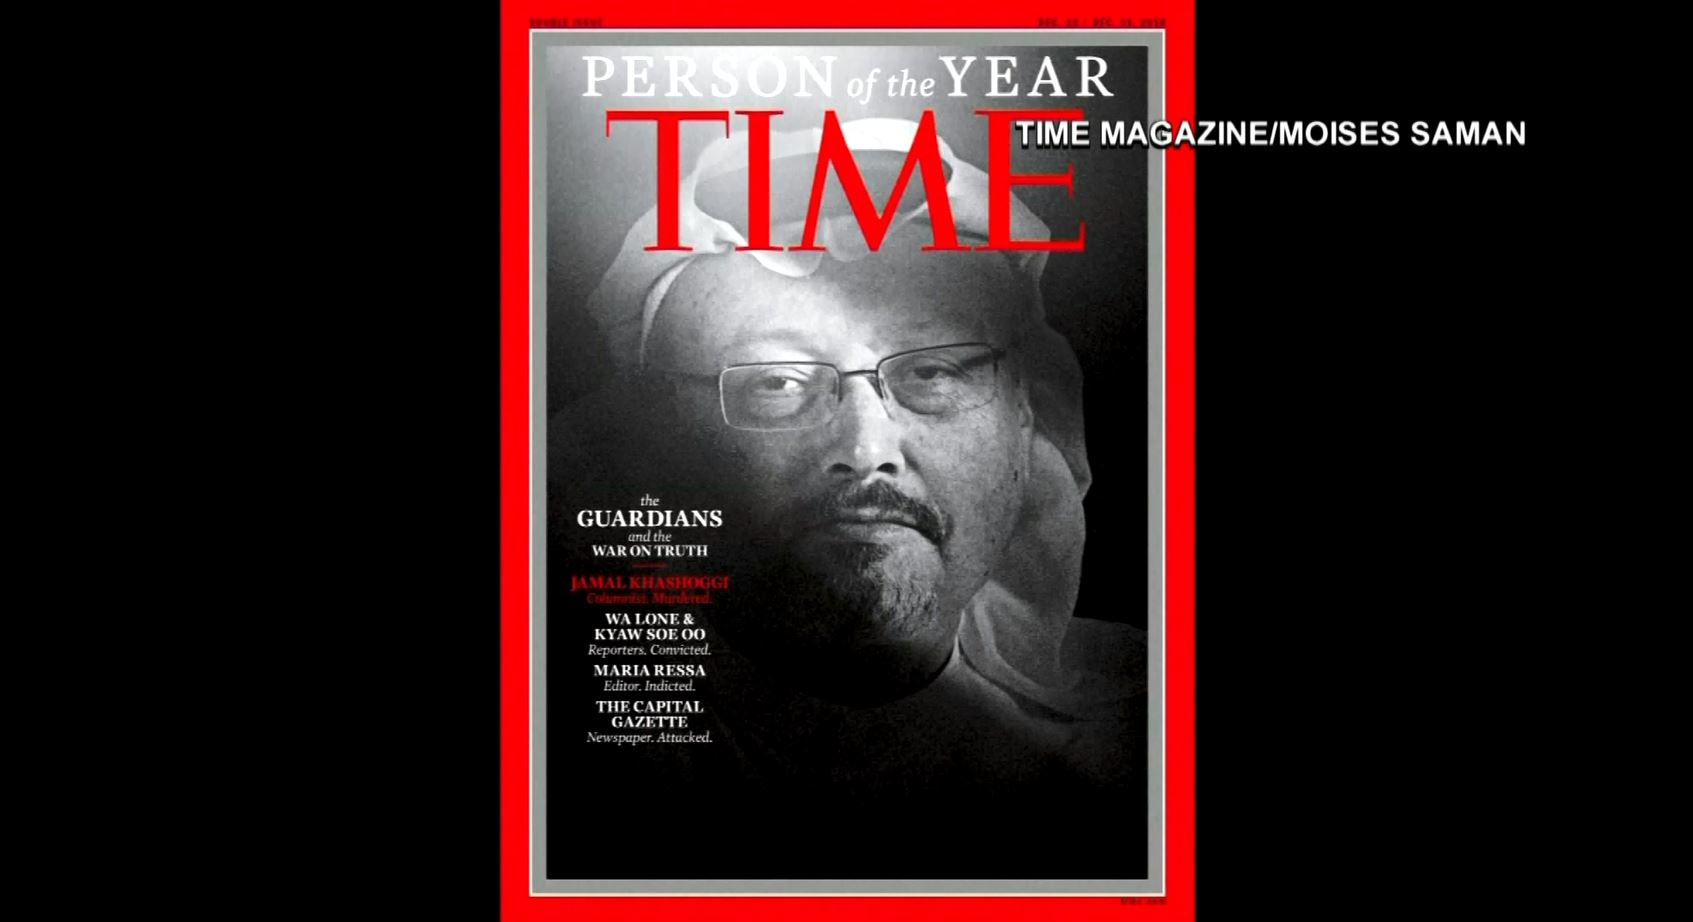 TIME PERSON OF THE YEAR 2018 2_1544561526085.JPG.jpg